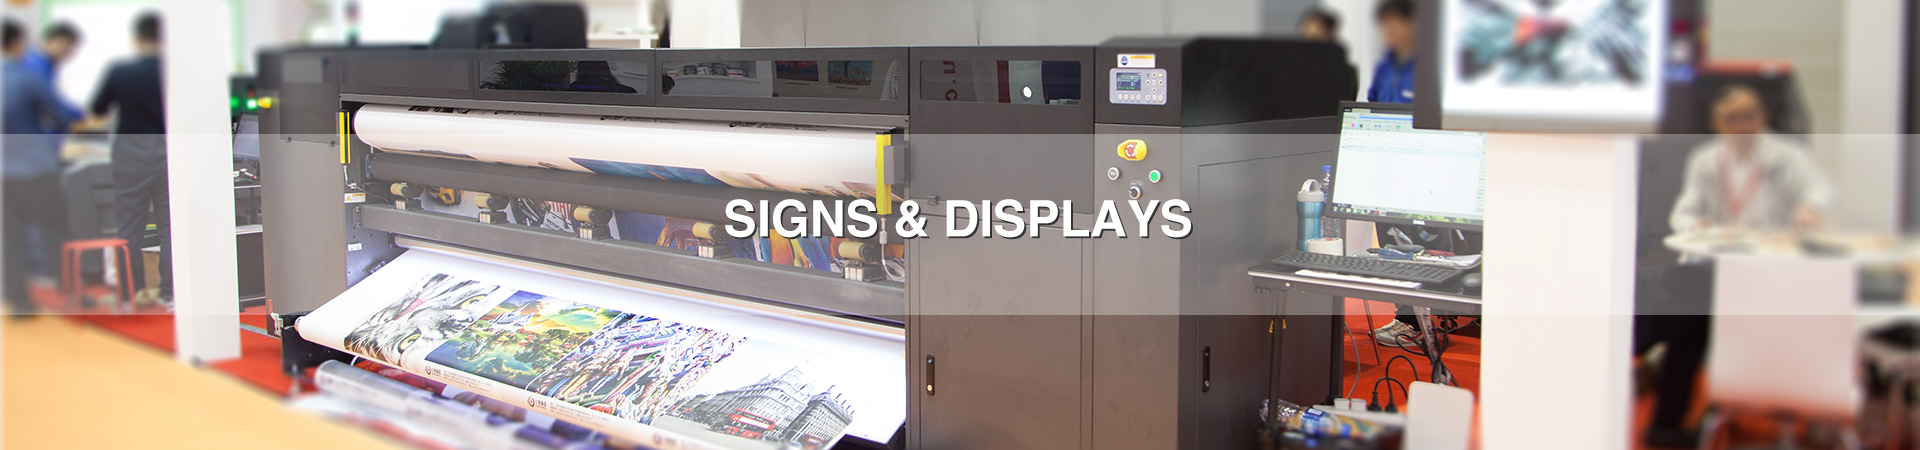 Signs & Displays